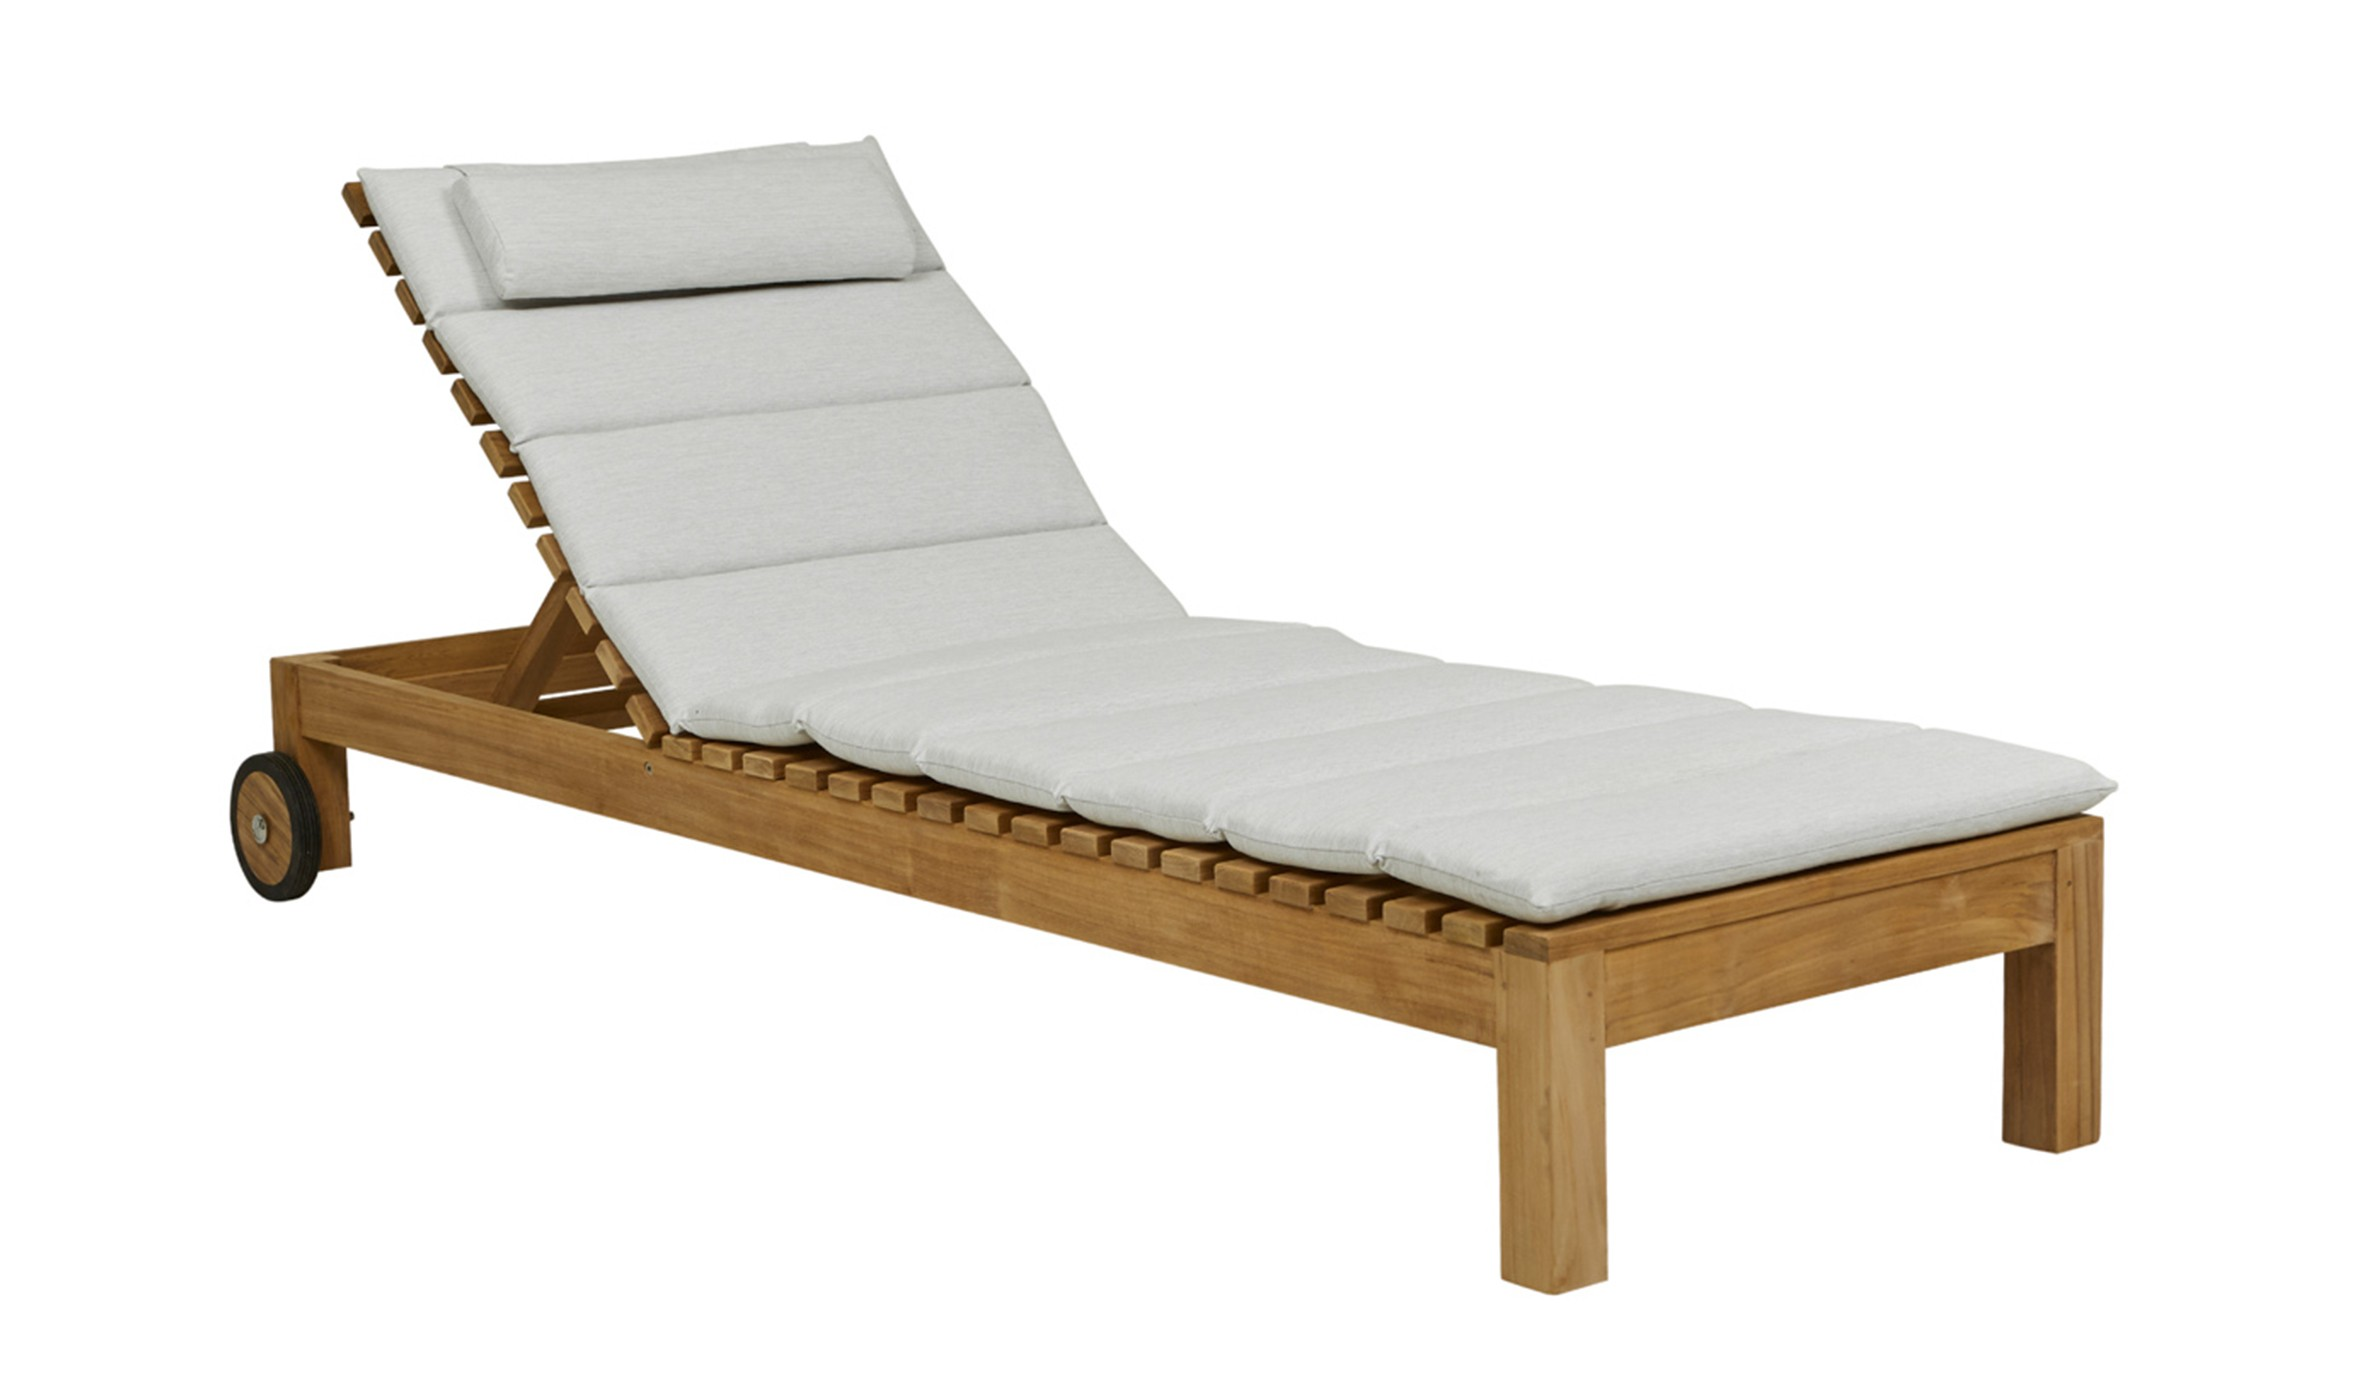 Furniture Thumbnails Sunbeds outdoor-sunbeds-and-daybeds-sonoma-tufted-100